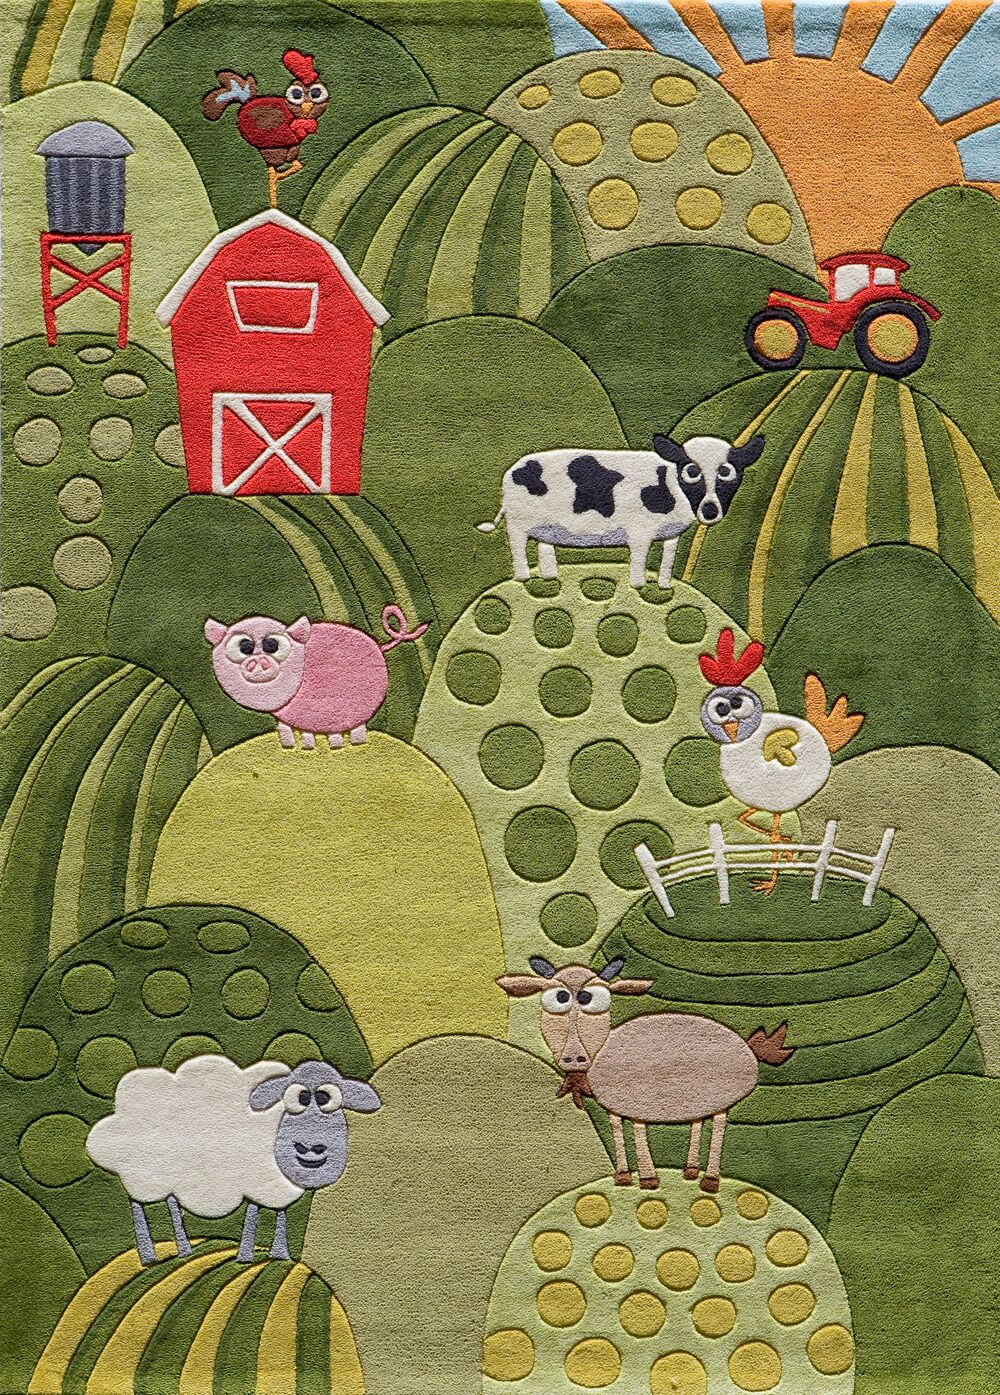 Johnnie Hand-Tufted Grass Green Area Rug Rug Size: Rectangle 4' x 6'